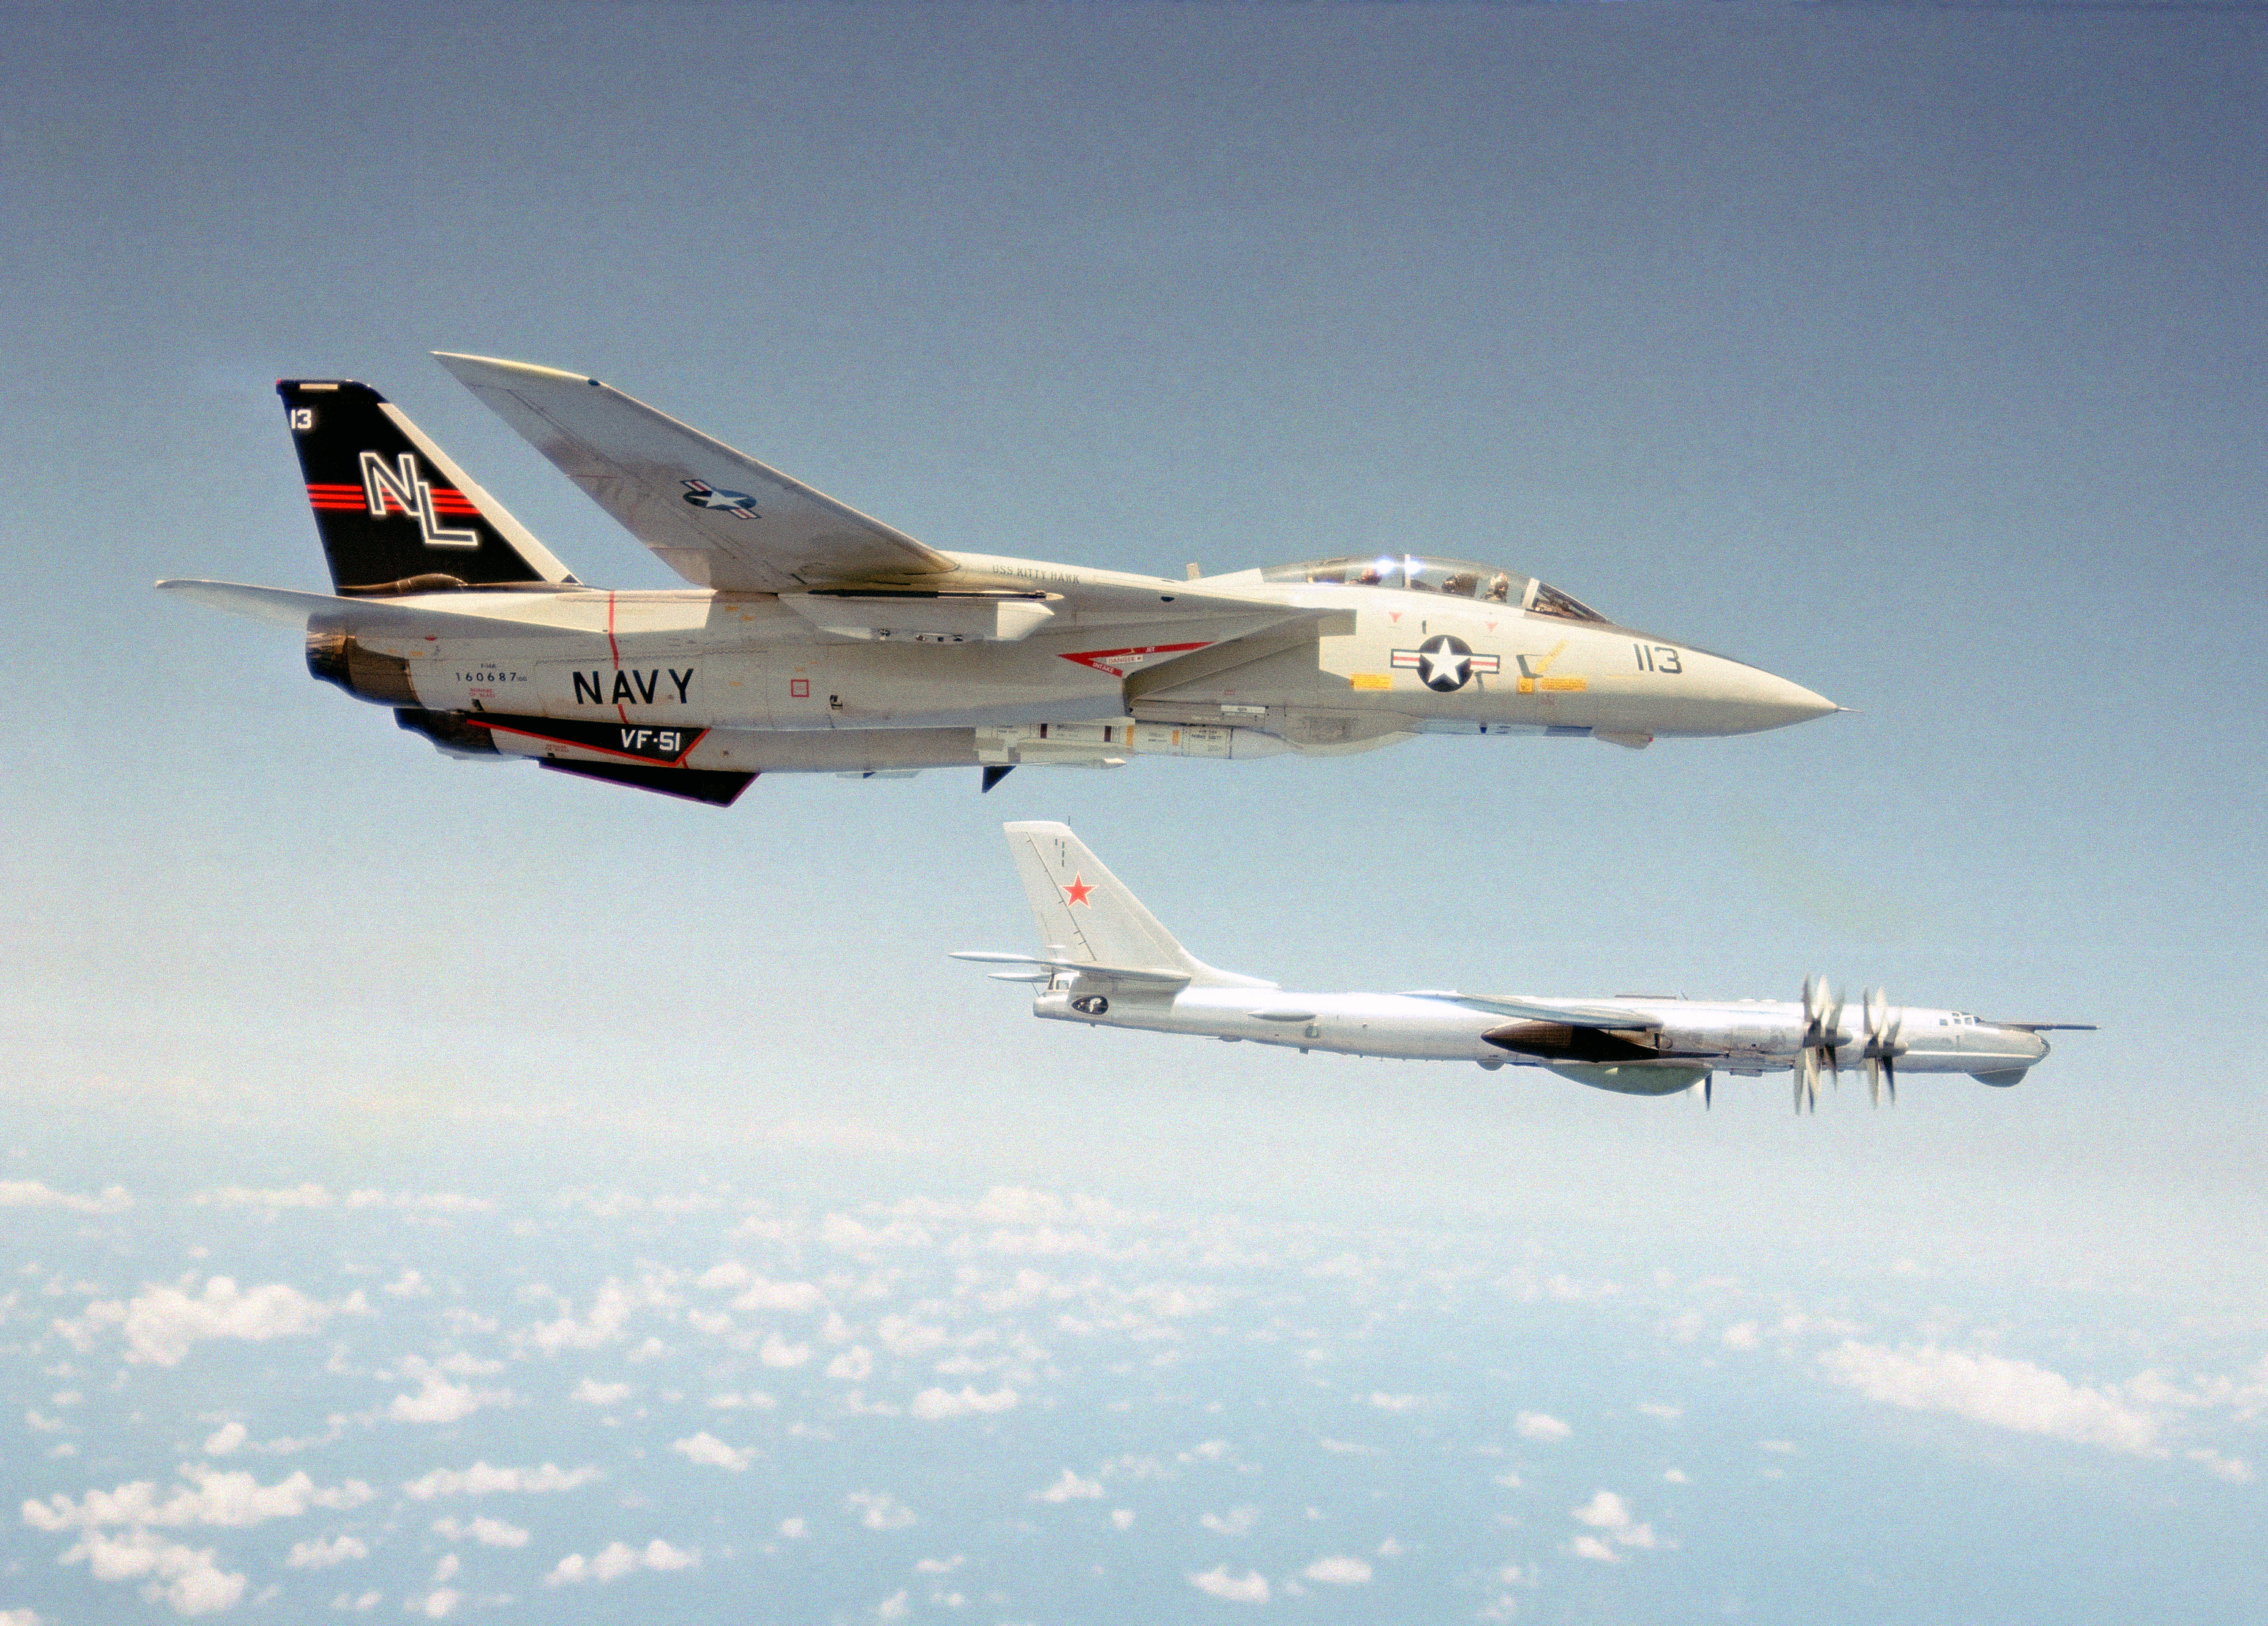 Filef 14 Tomcat Vf 51 Intercepting Tu 95 Bearjpg Wikimedia Commons